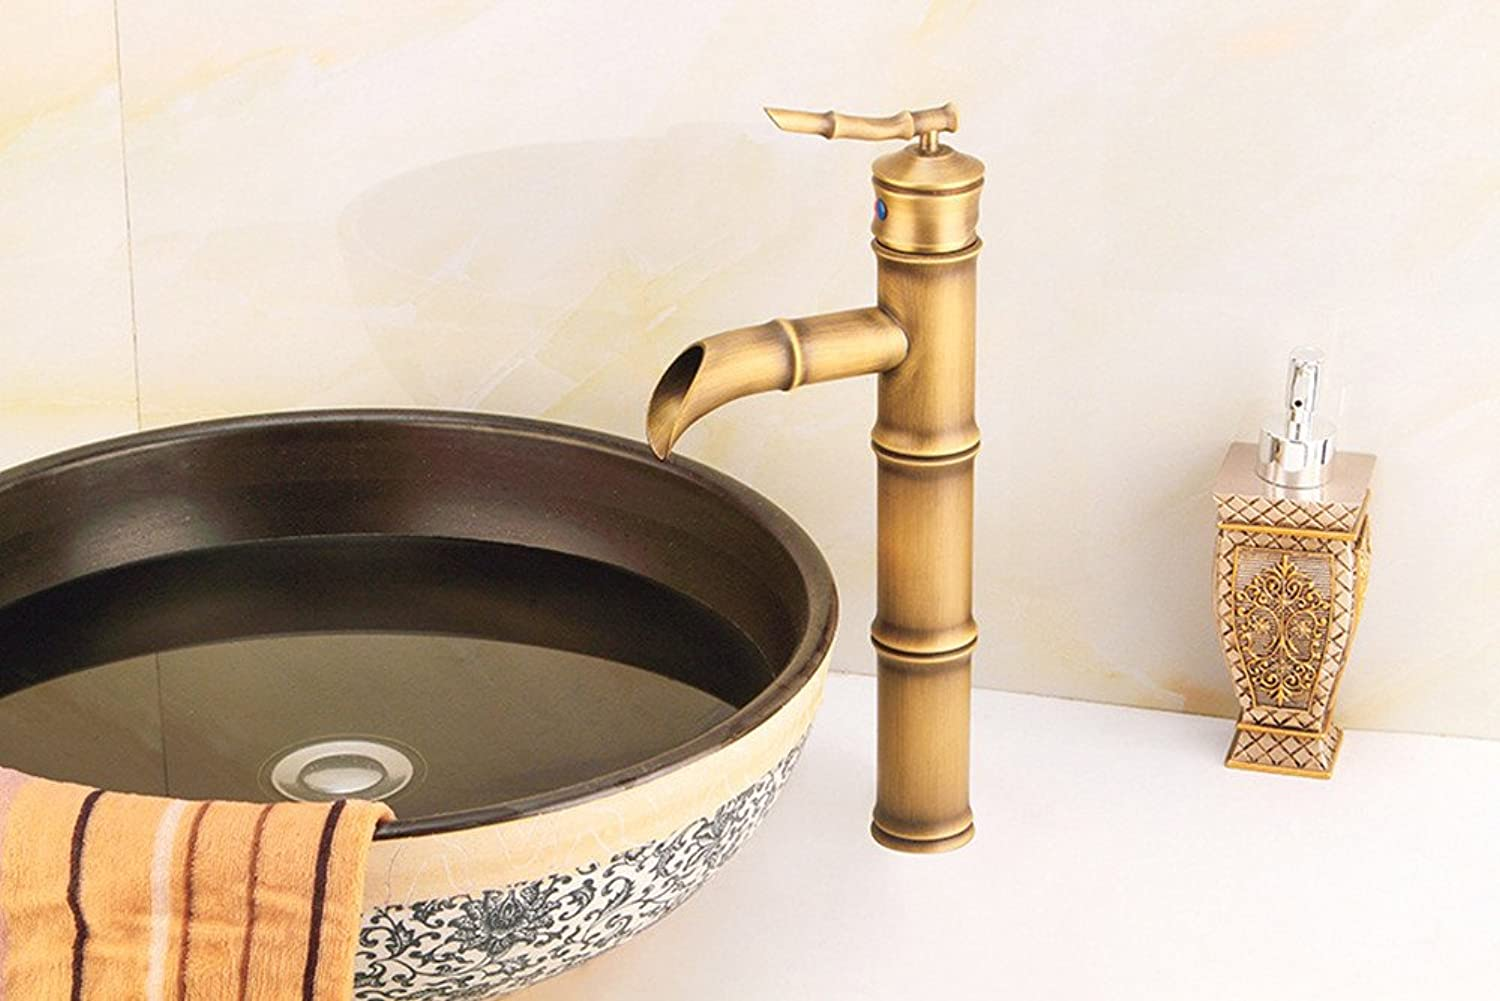 Hlluya Professional Sink Mixer Tap Kitchen Faucet Retro Single-COLD WATER FAUCET